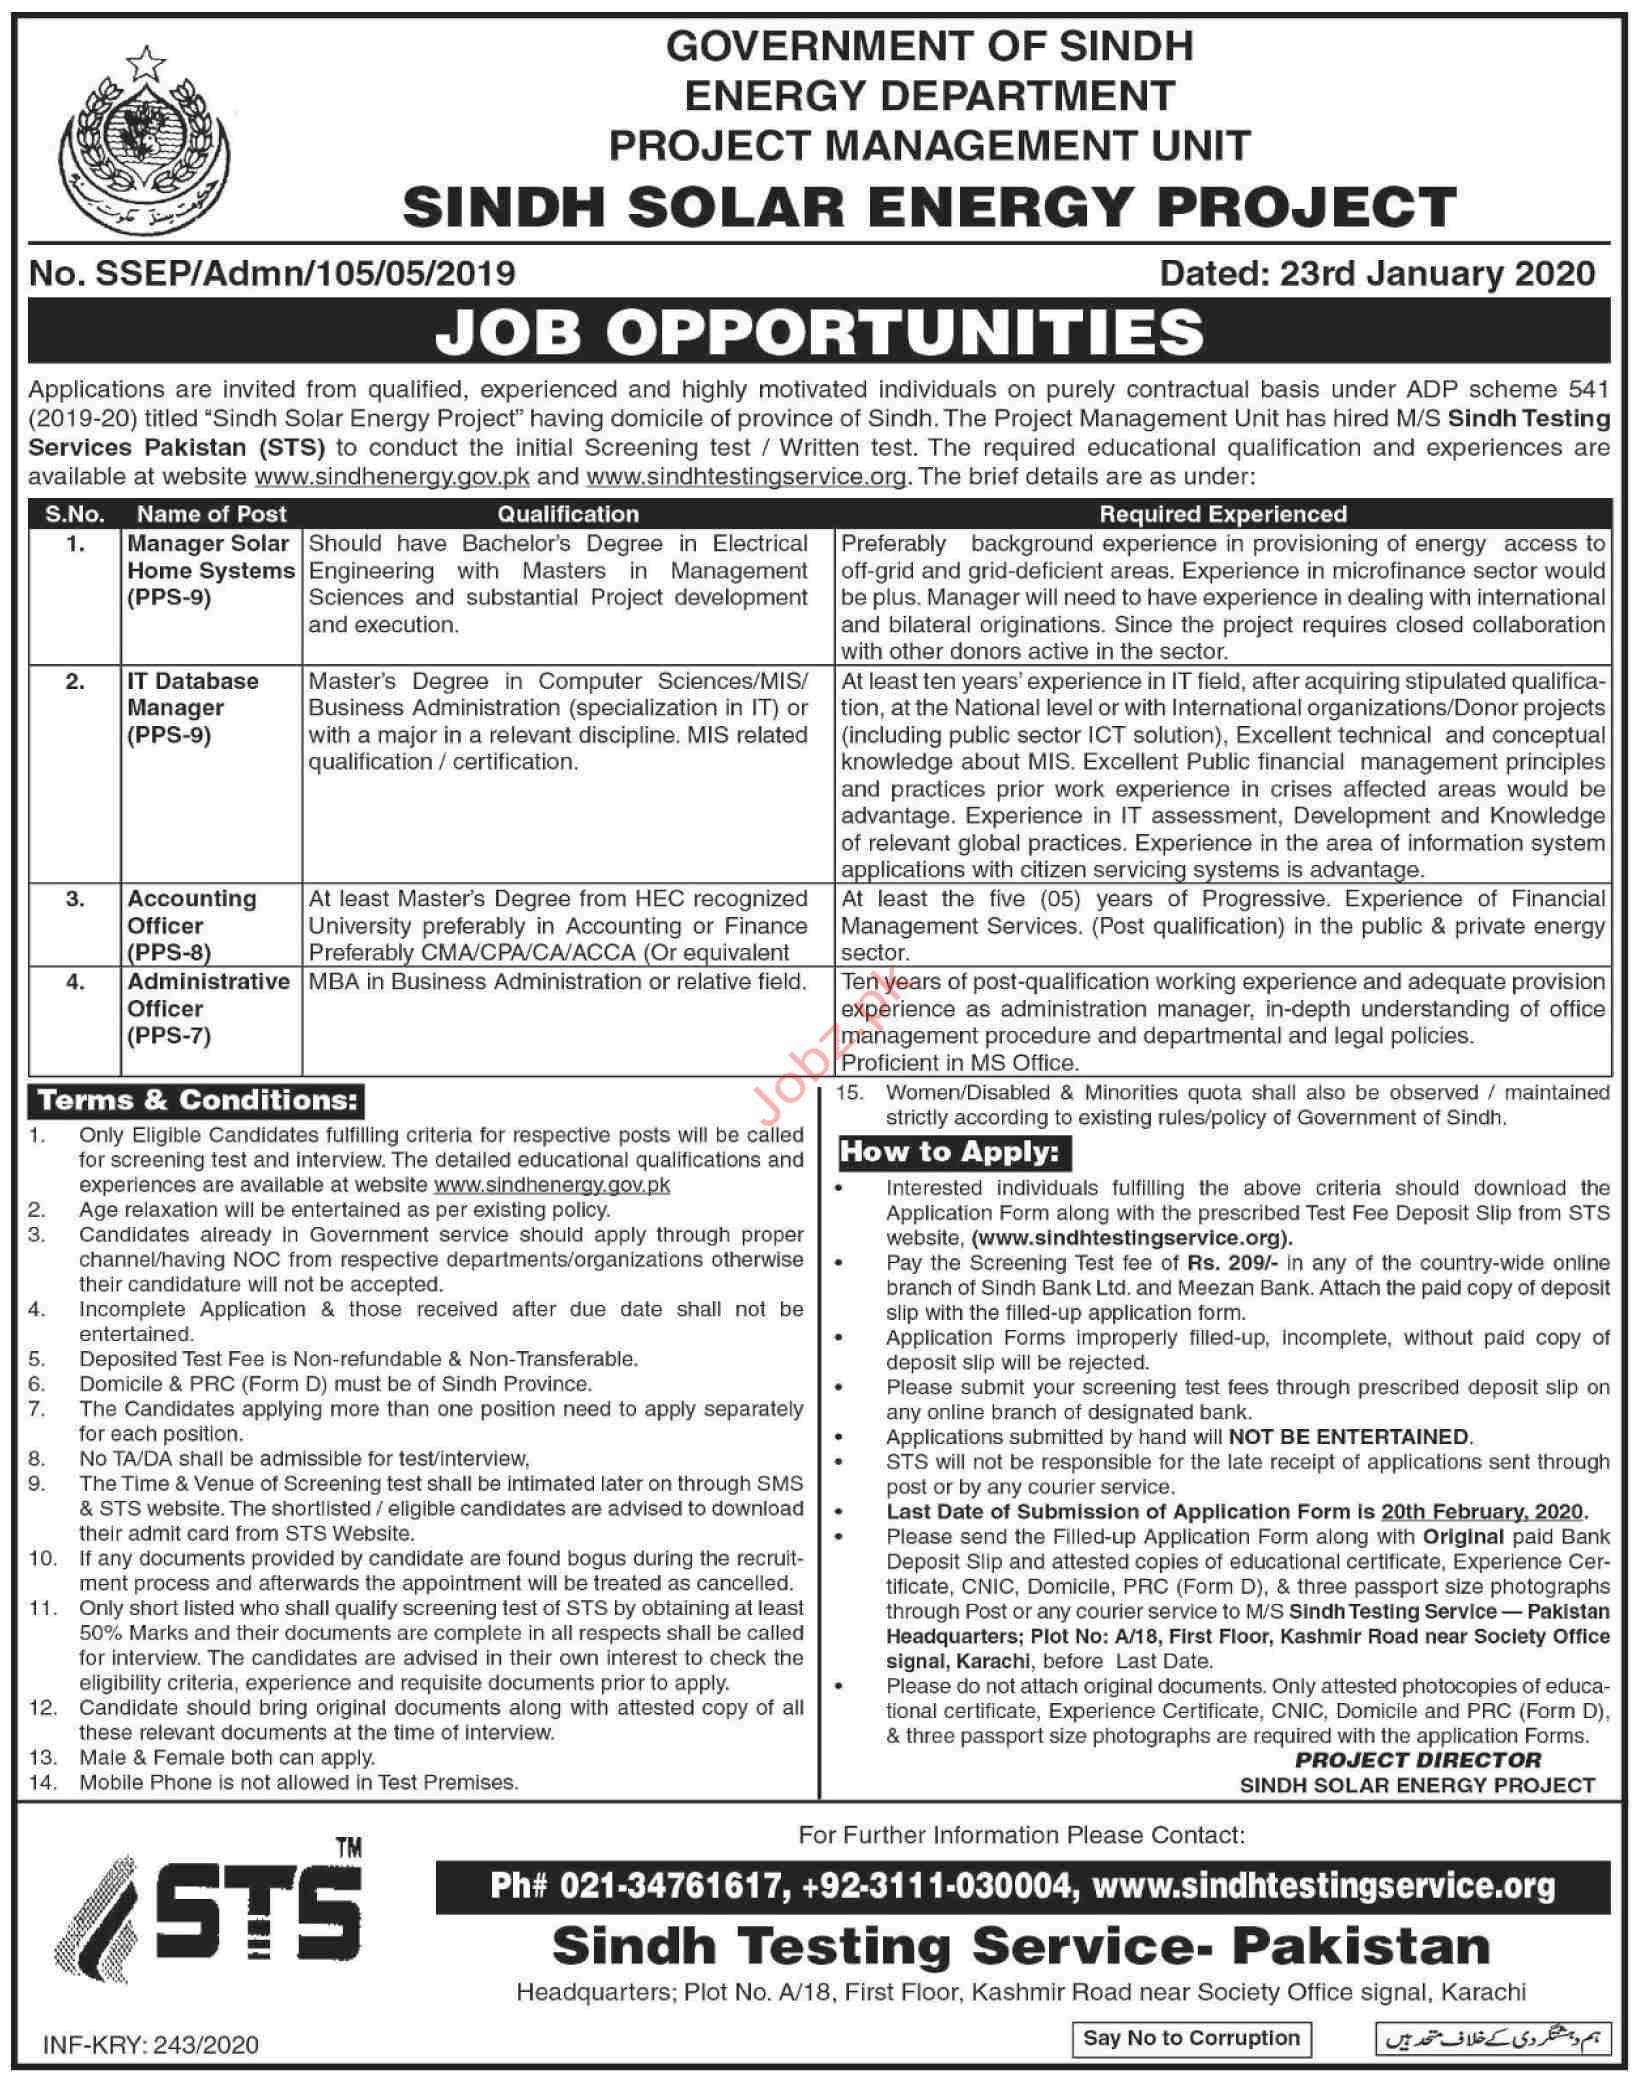 Energy Department Govt of Sindh Jobs 2020 Via STS